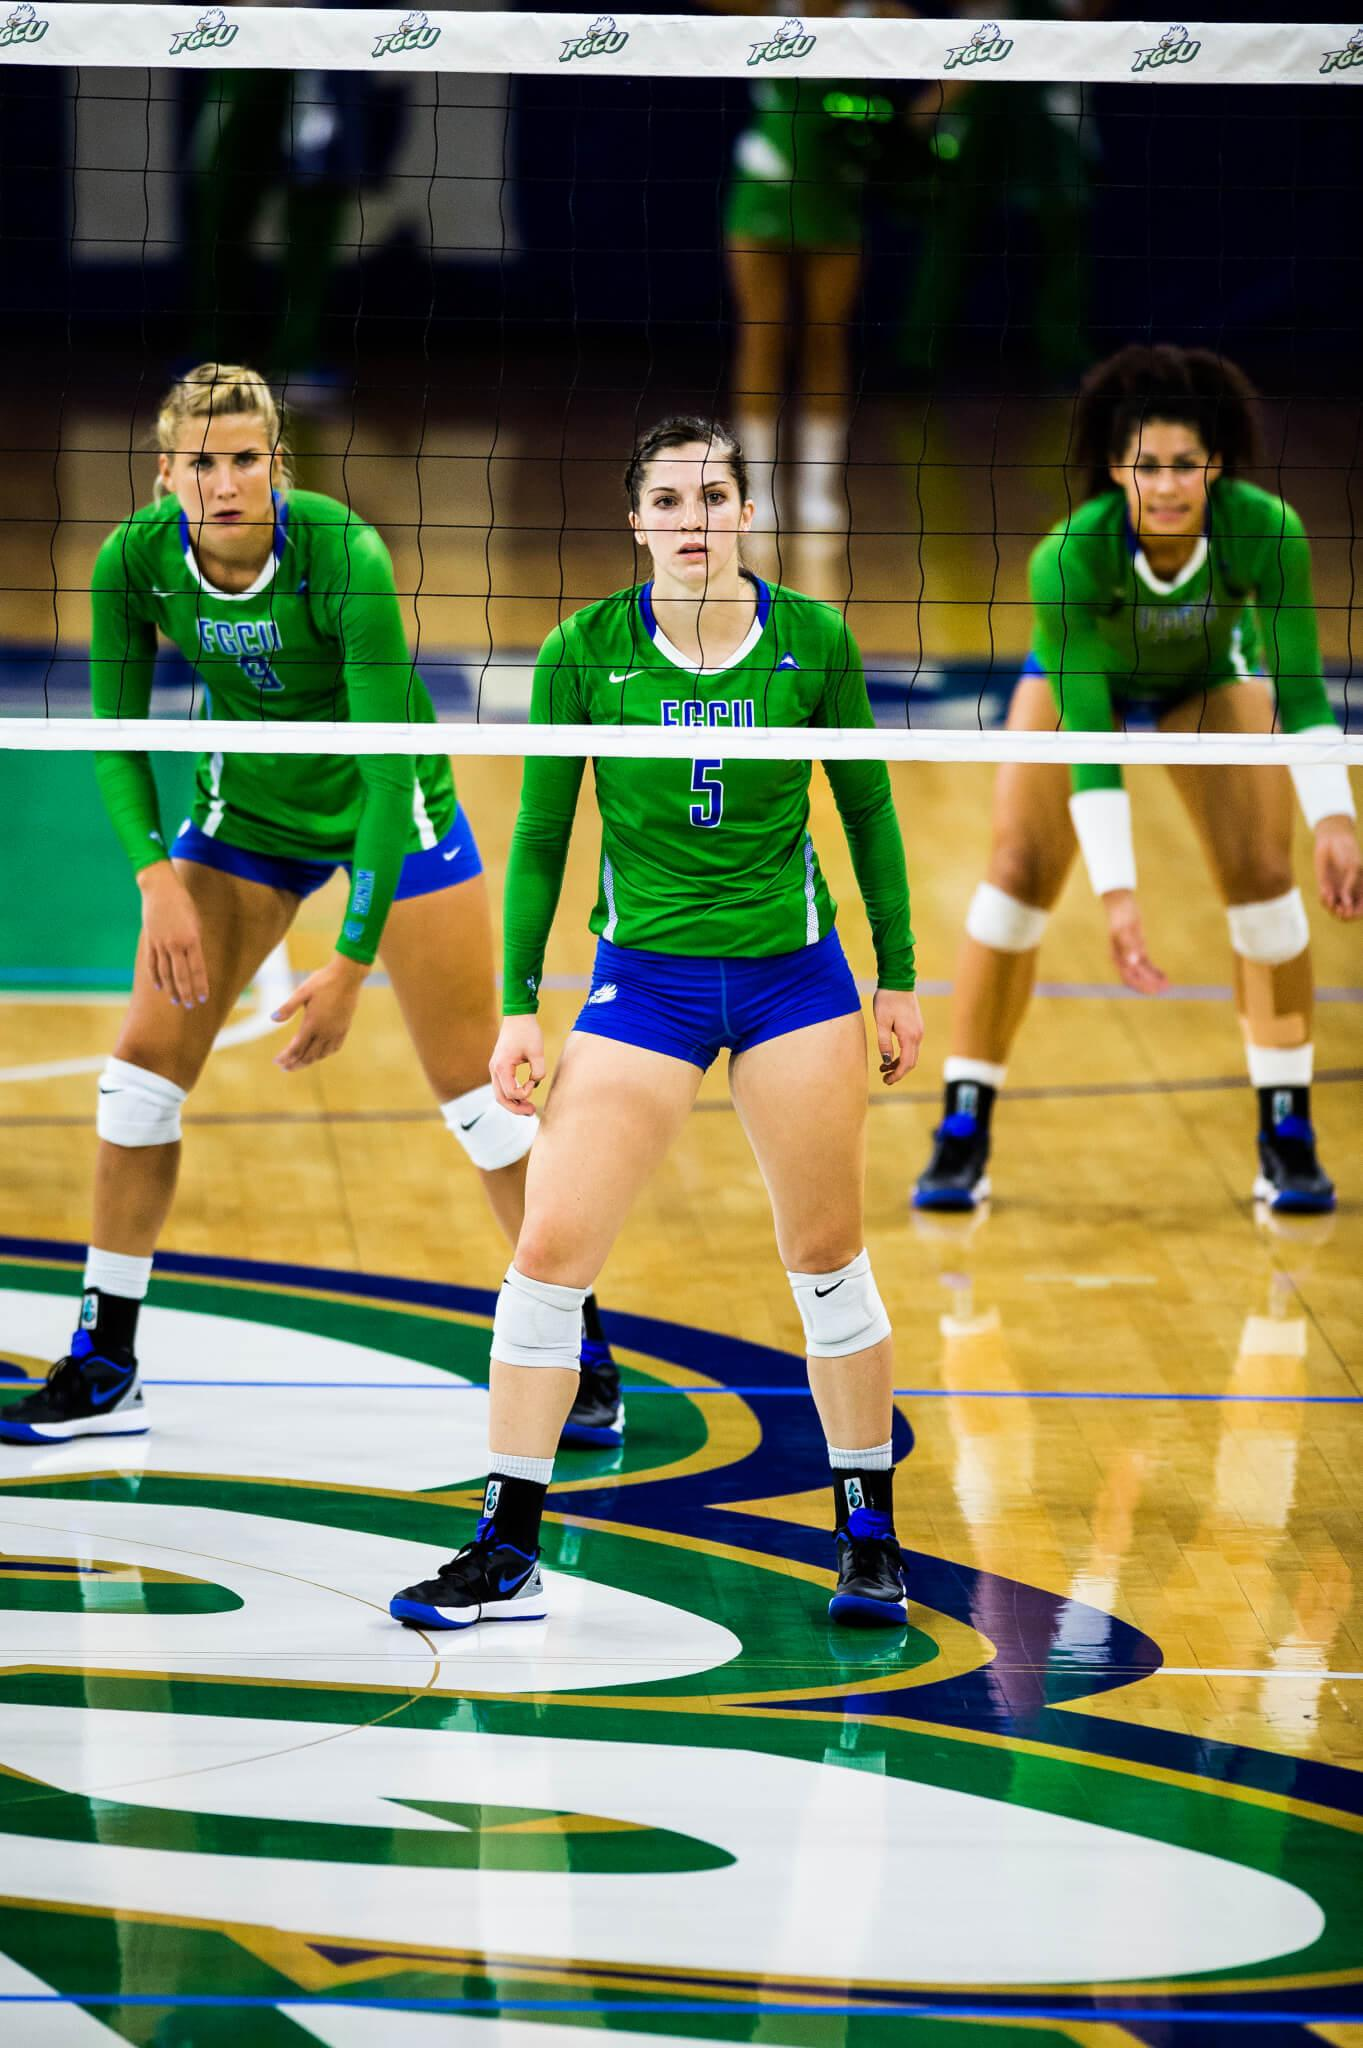 FGCU volleyball loses last home game of season 3-0 to Lipscomb